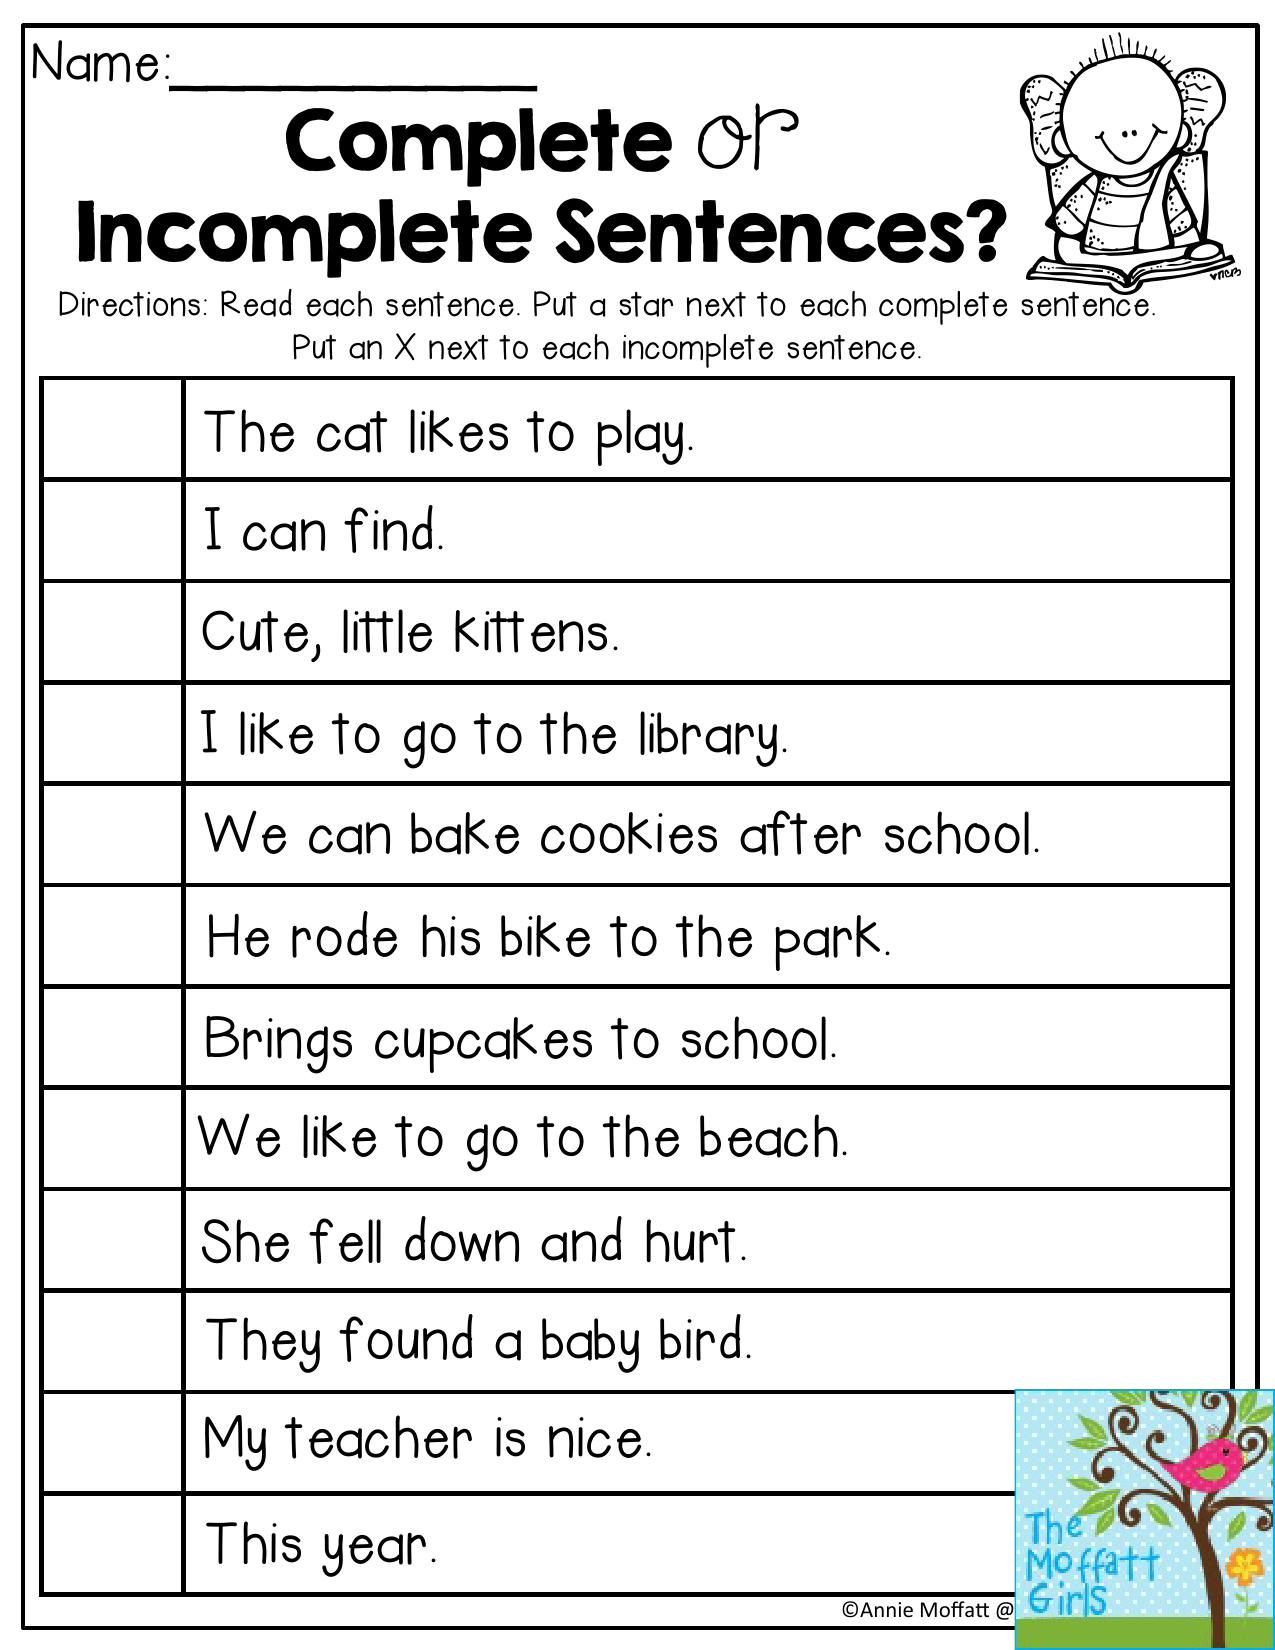 Complete Sentences Worksheets 4th Grade Plete or In Plete Sentences Read Each Sentence and